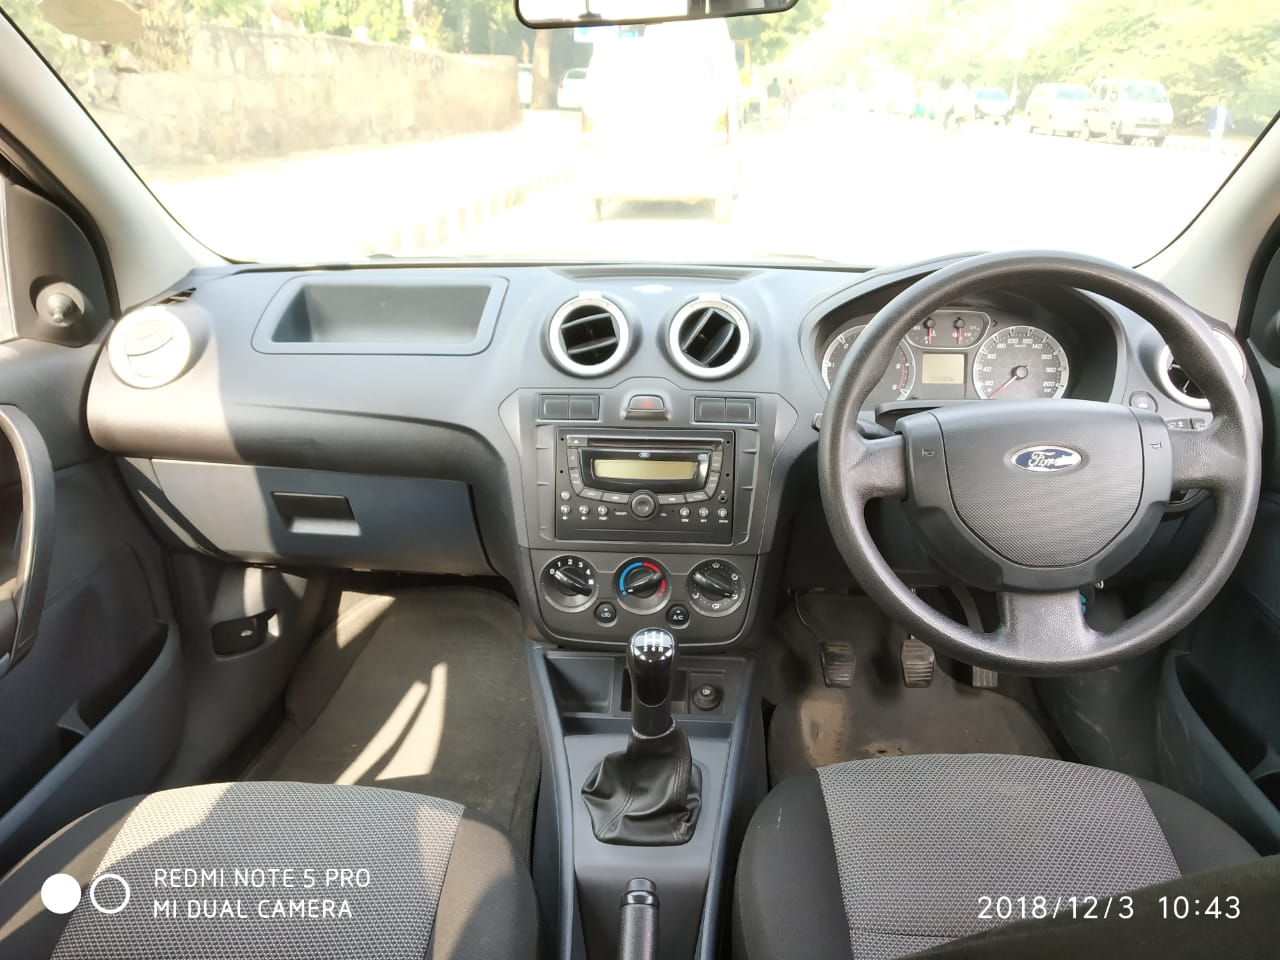 2014 Used FORD FIESTA CLASSIC CLXI 1.6